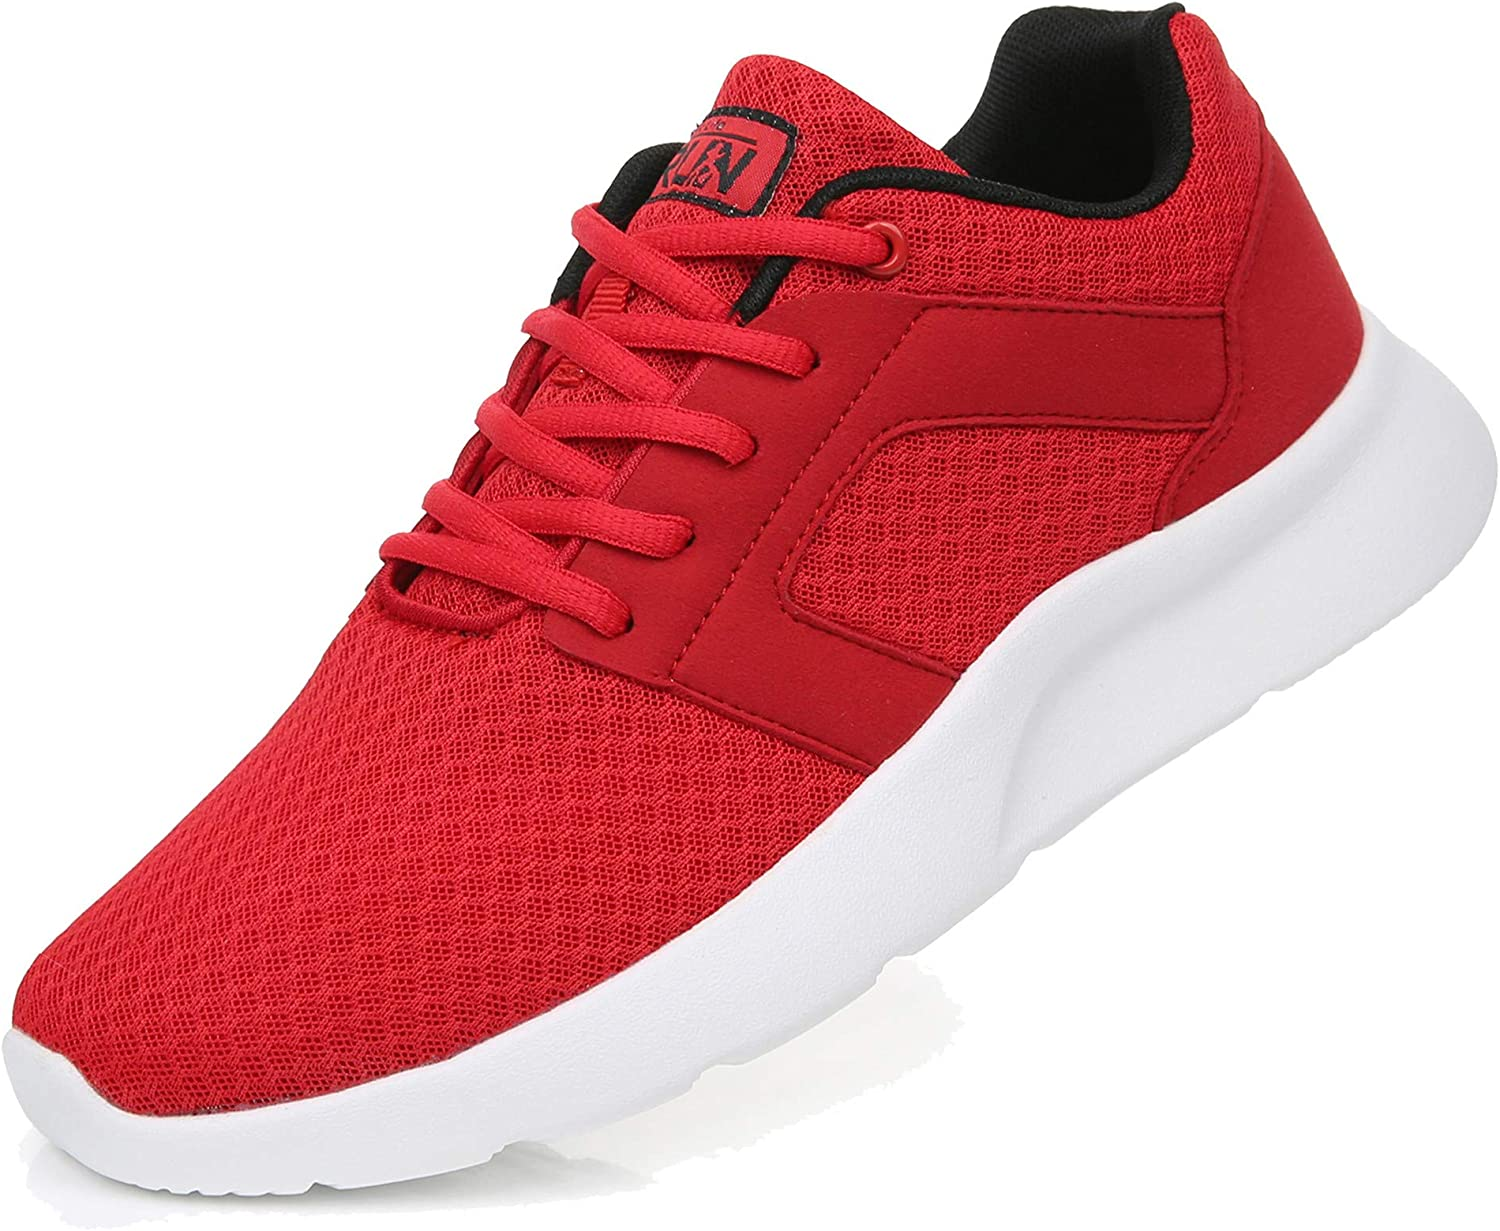 Uricoo Zapatillas Running Hombre Mujer Zapatos Deporte para Correr Trail Fitness Sneakers Ligero Transpirable 34-46